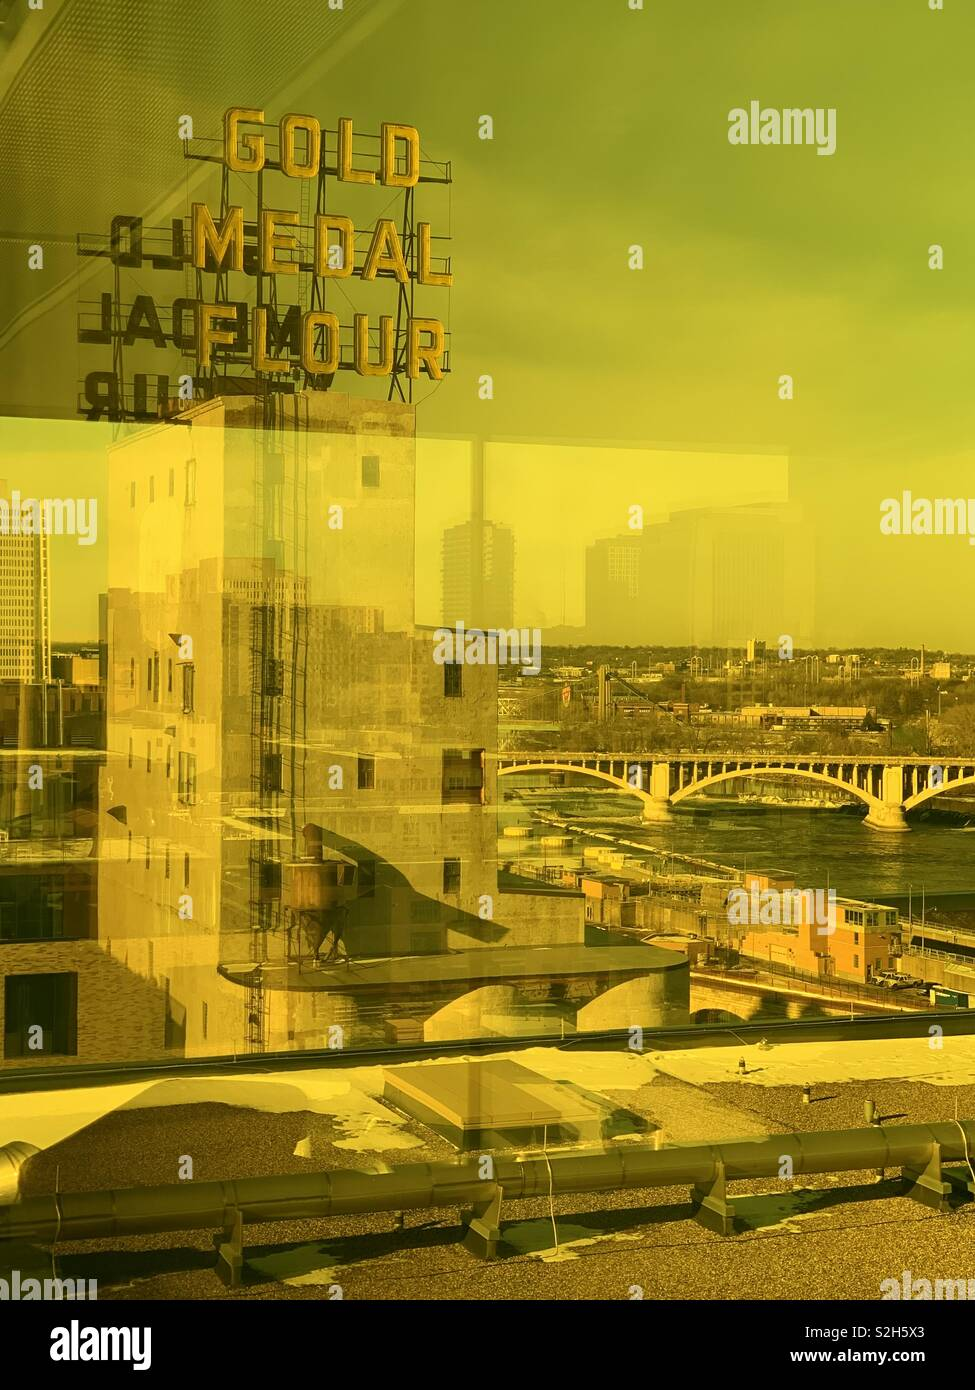 View of the gold medal flour building from the amber floor of the Guthrie Theater in Minneapolis Minnesota December 2018 - Stock Image